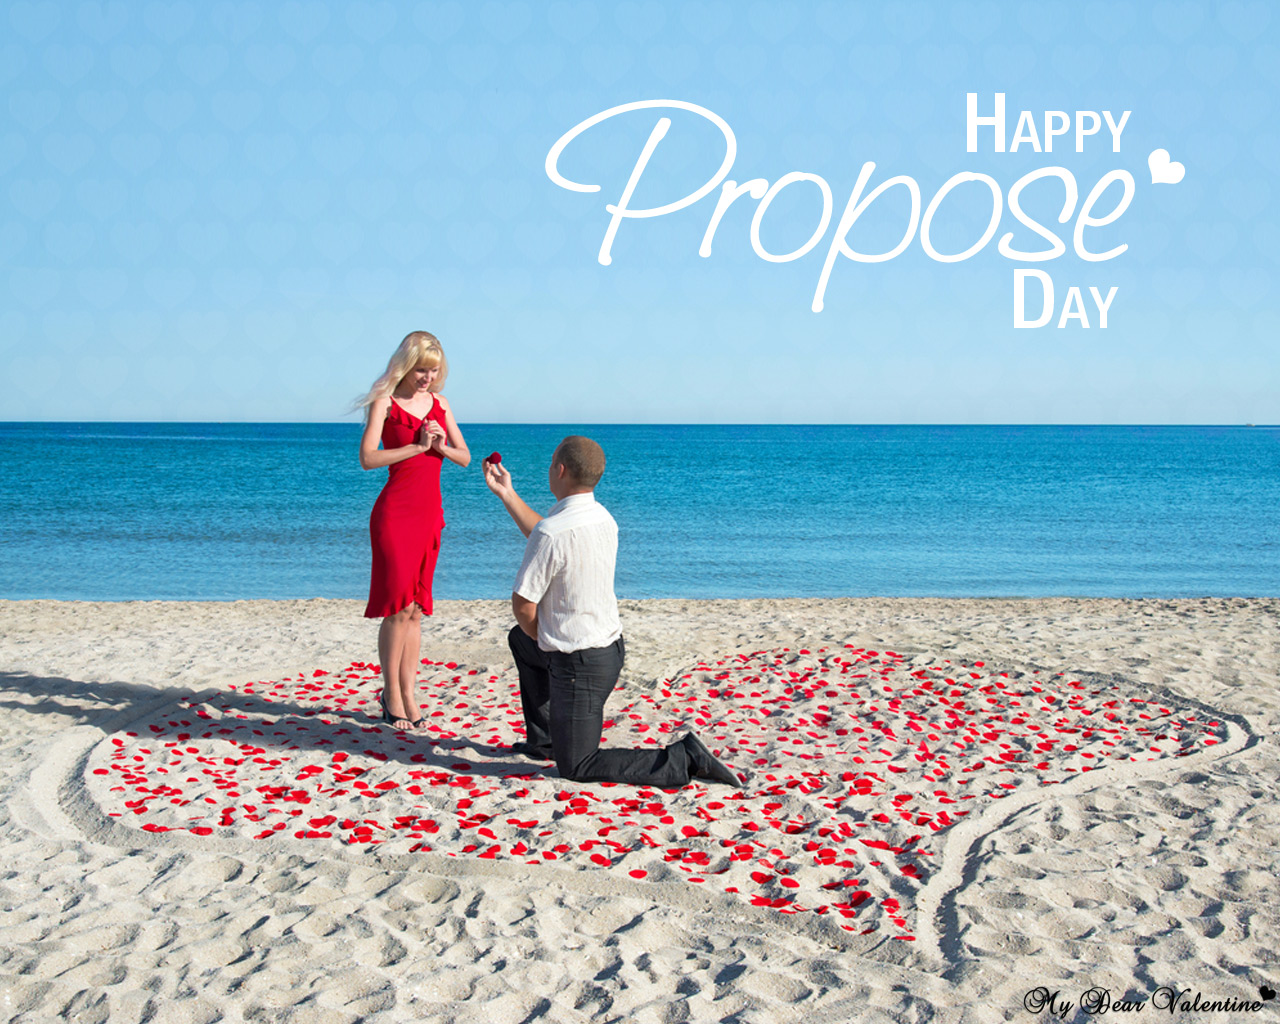 Girl Propose To Boy Wallpaper With Quotes Happy Propose Day Romantic Gifts And Free Wallpapers For